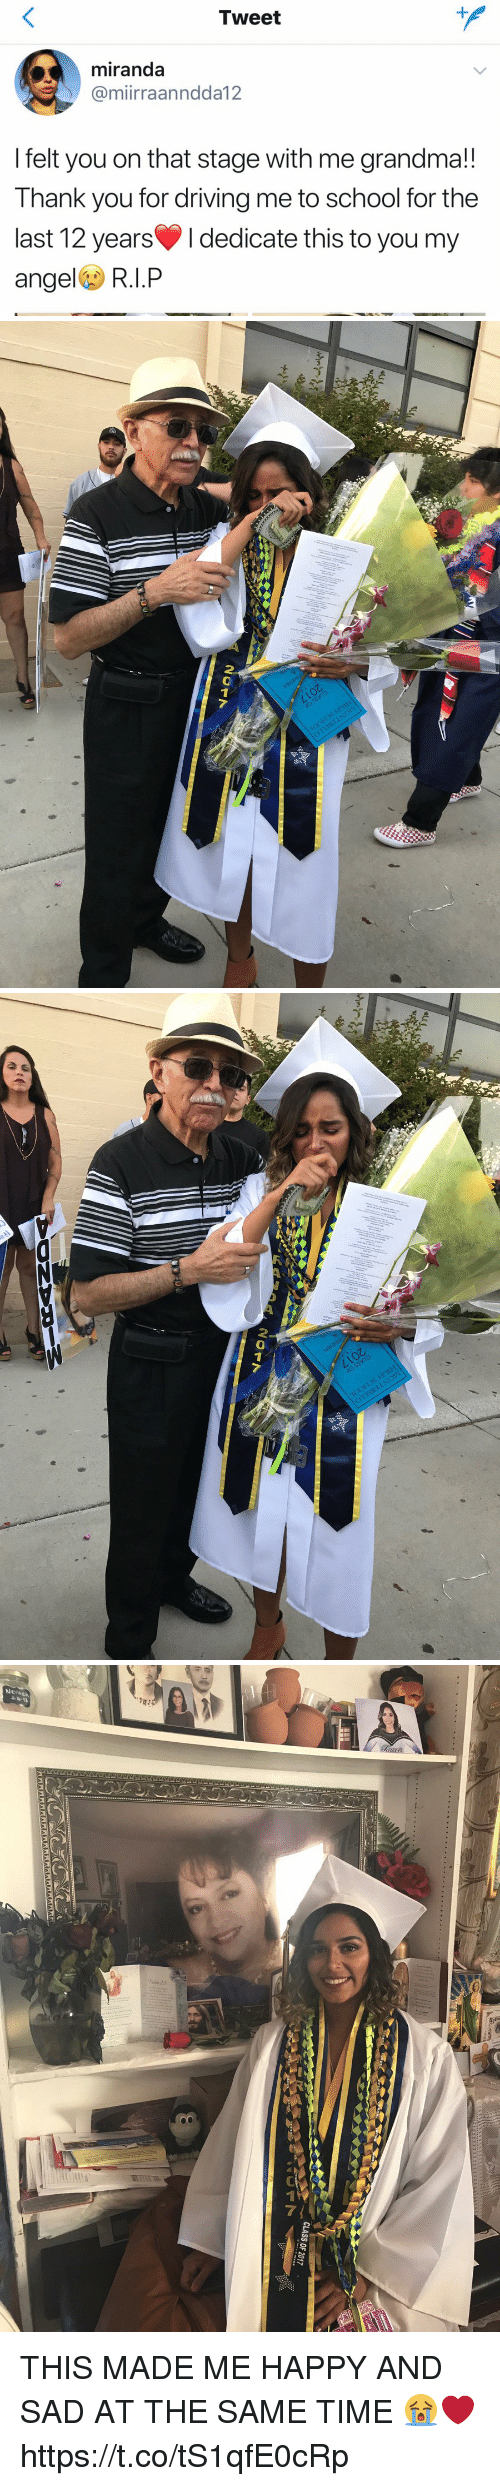 Driving, Grandma, and School: Tweet  miranda  Camiirraanndda 12  felt you on that stage With me grandma!  Thank you for driving me to School for the  last 12 years l dedicate this to you m  ange  R.I.P   2C17   2017  a   CLASS OF 2017 THIS MADE ME HAPPY AND SAD AT THE SAME TIME 😭❤️ https://t.co/tS1qfE0cRp